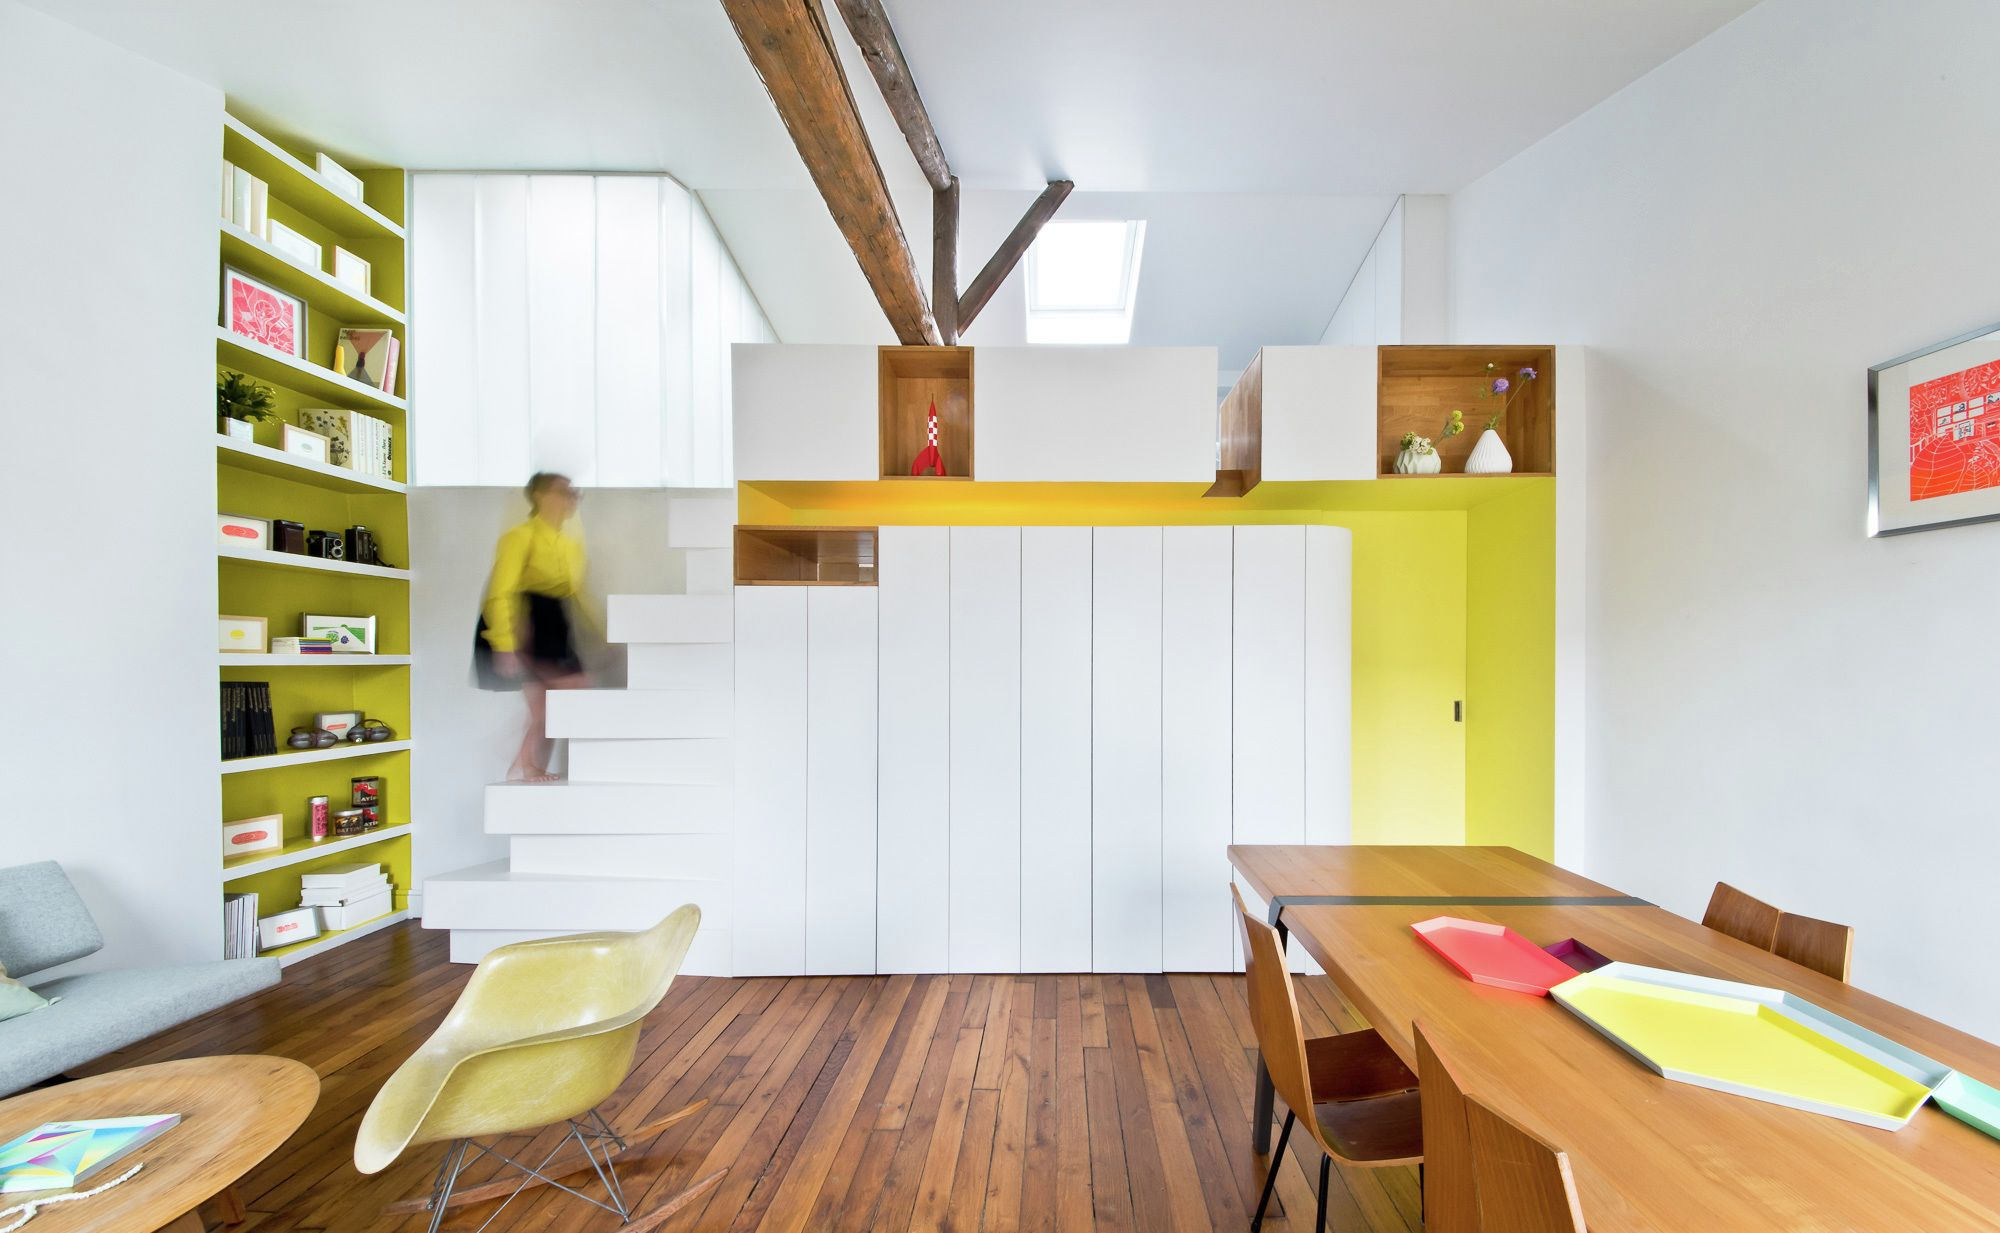 Gallery of Hike / SABO Project - 1 | Hiking, Paris apartments and ...